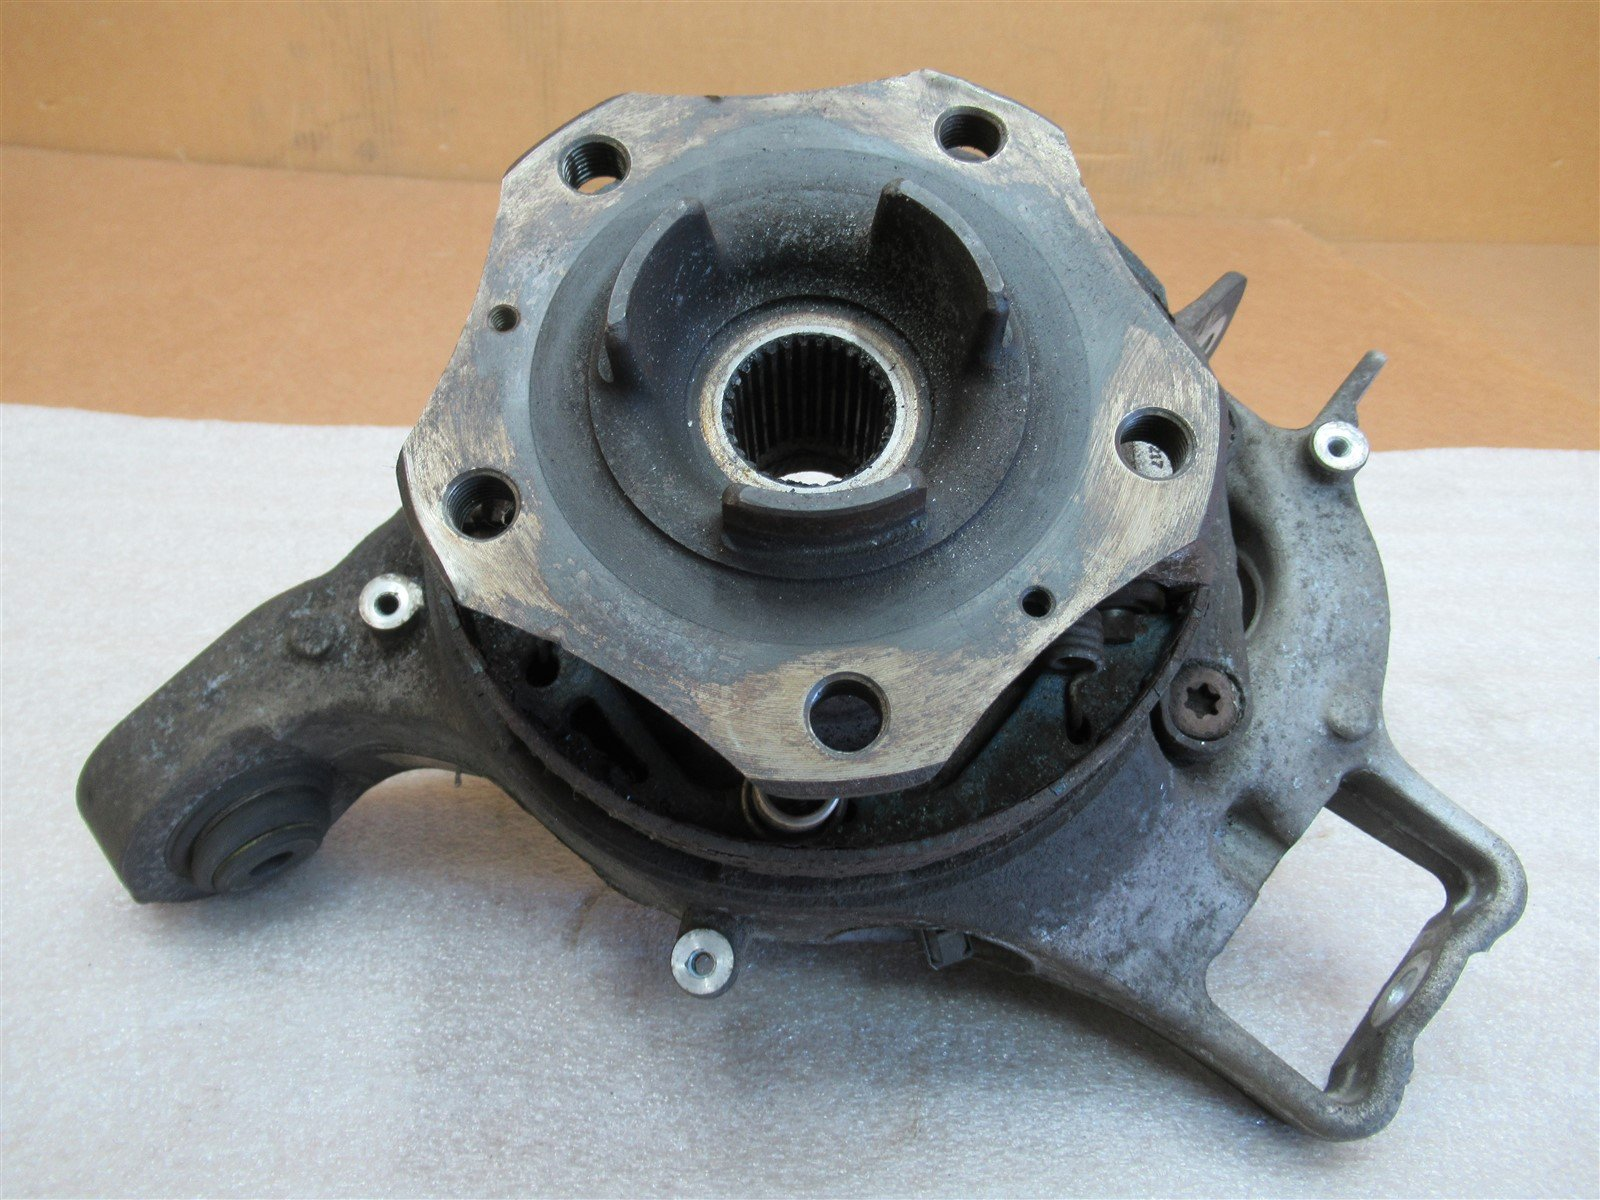 10 Panamera 4S AWD Porsche 970 R REAR HUB STEERING KNUCKLE 97033161202 91,548